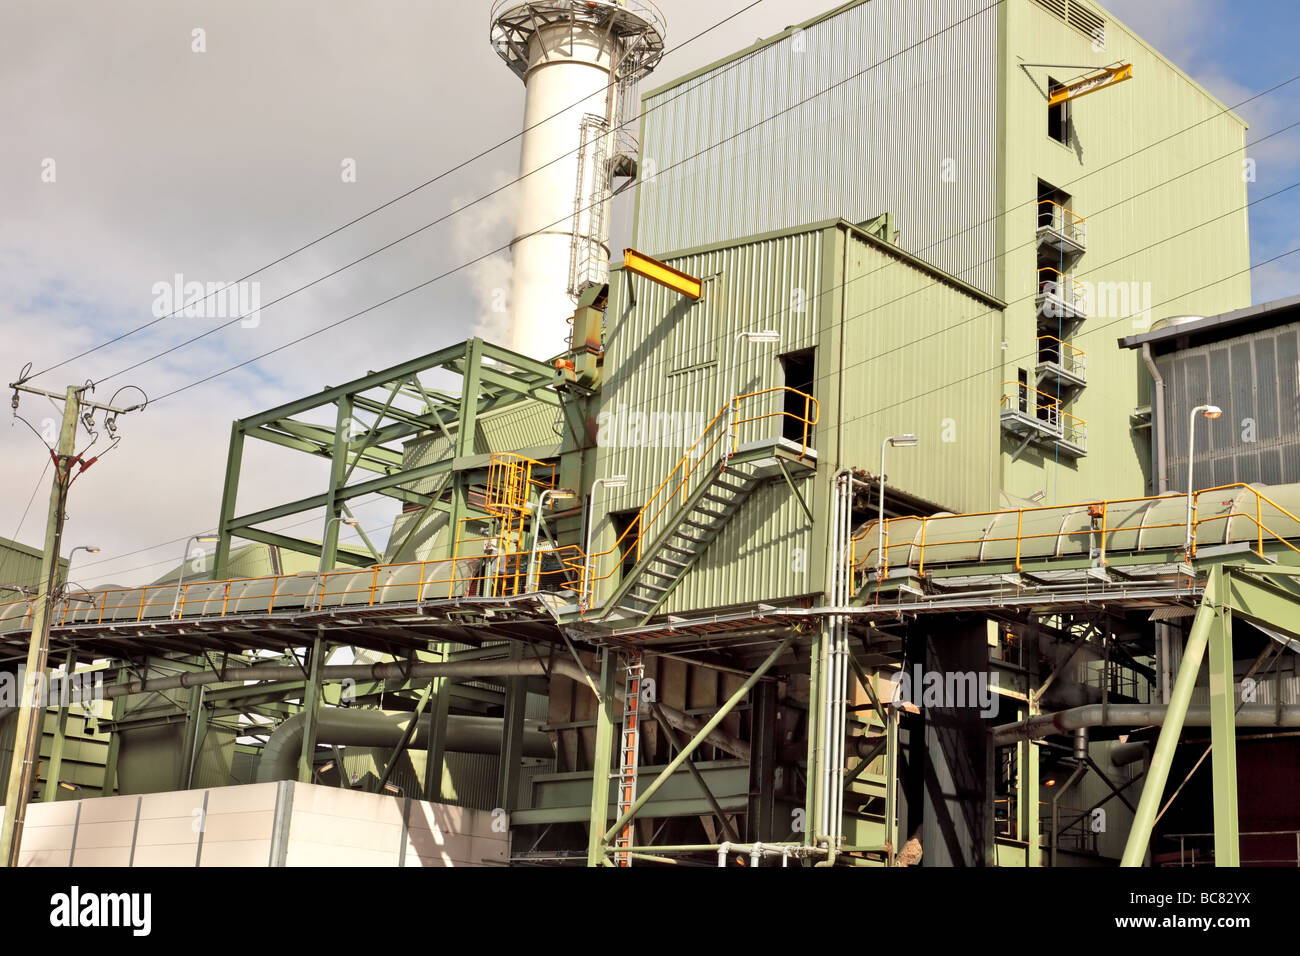 Industrial detail of part of an operational sugar mill - Stock Image